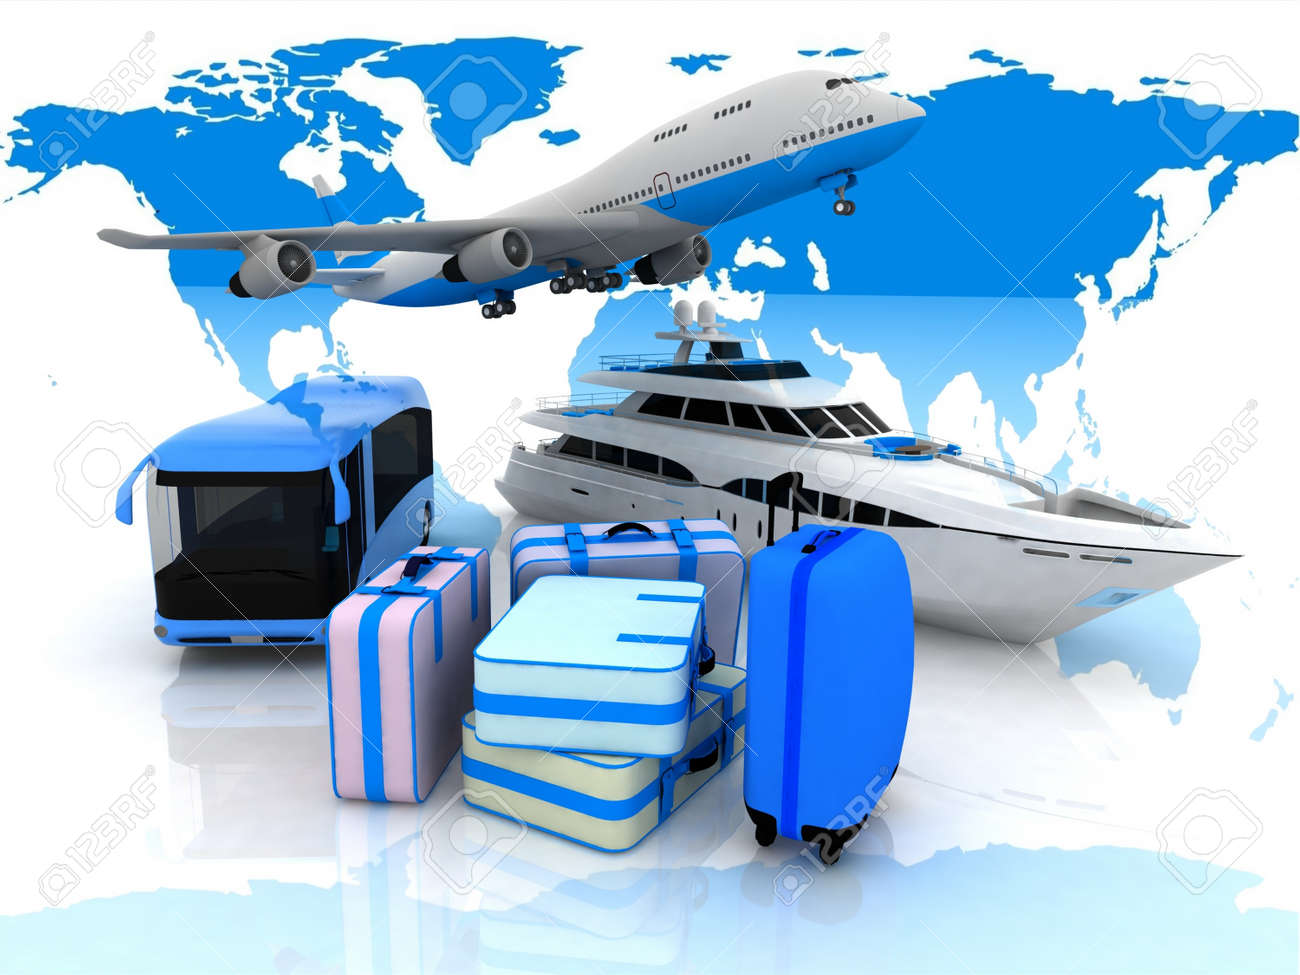 types of transport liners  and suitcases on a background map of the world Stock Photo - 12588316